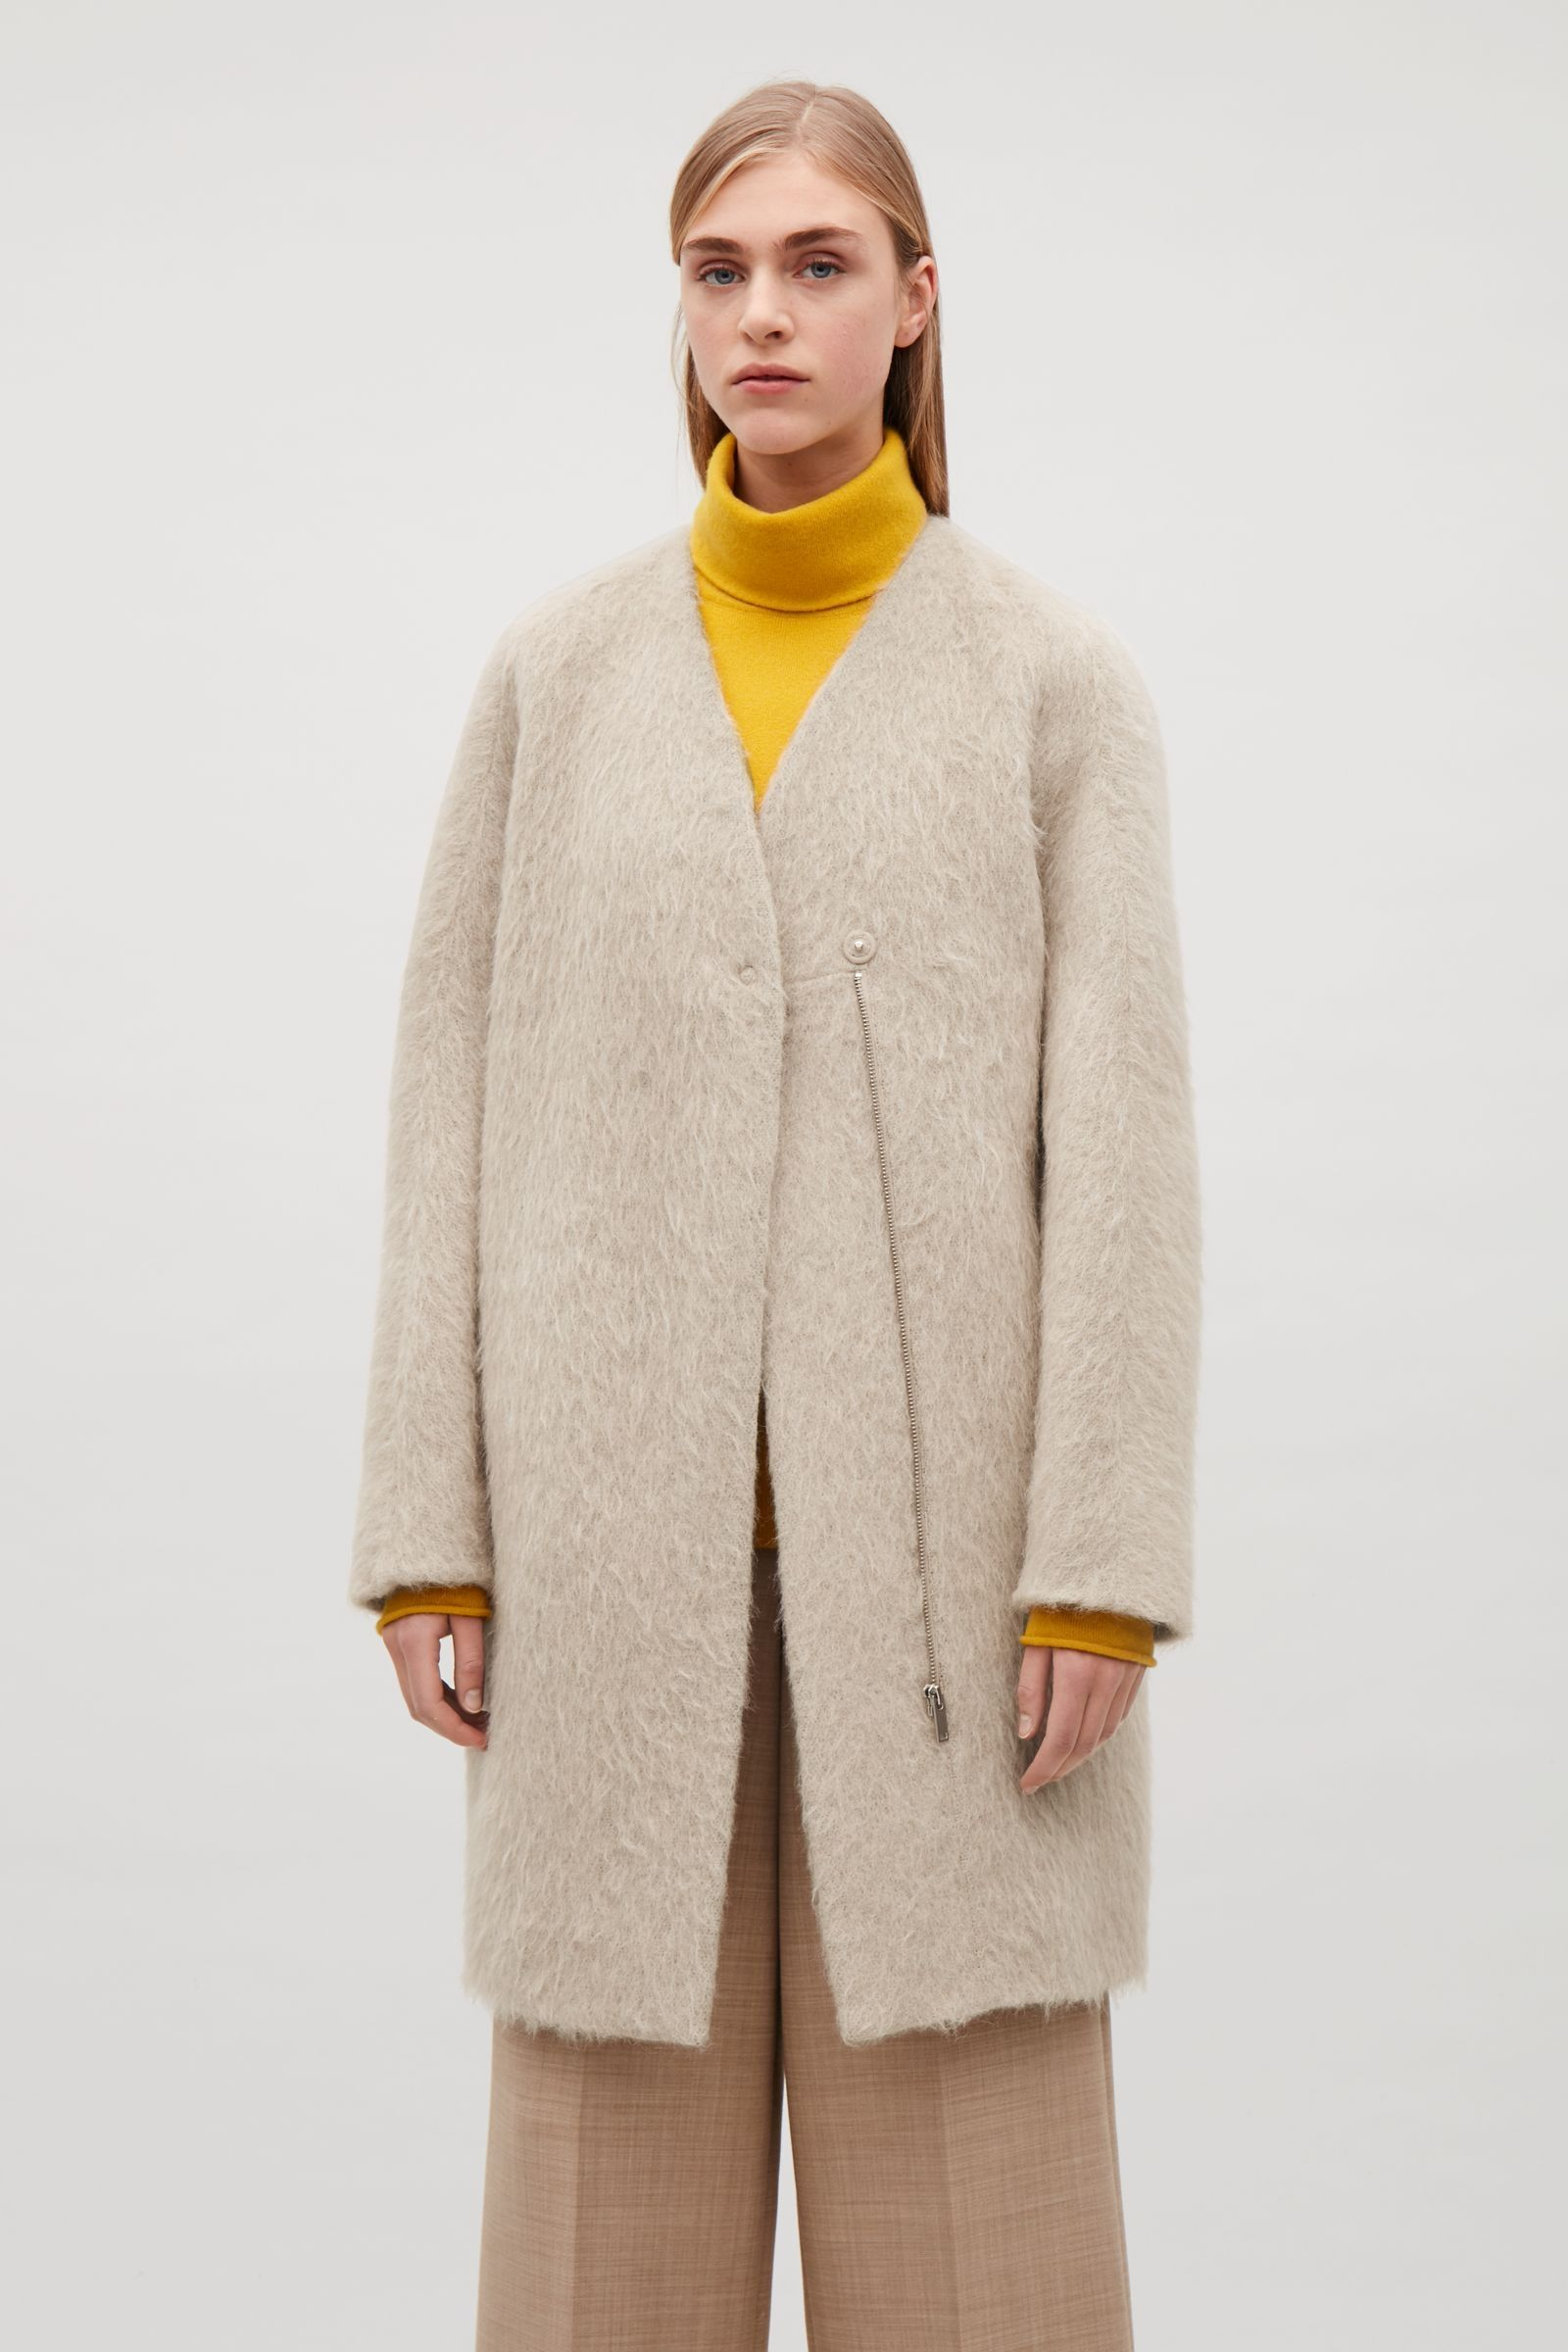 a9b91d7ae4 COS image 4 of Collarless cocoon coat in Light beige